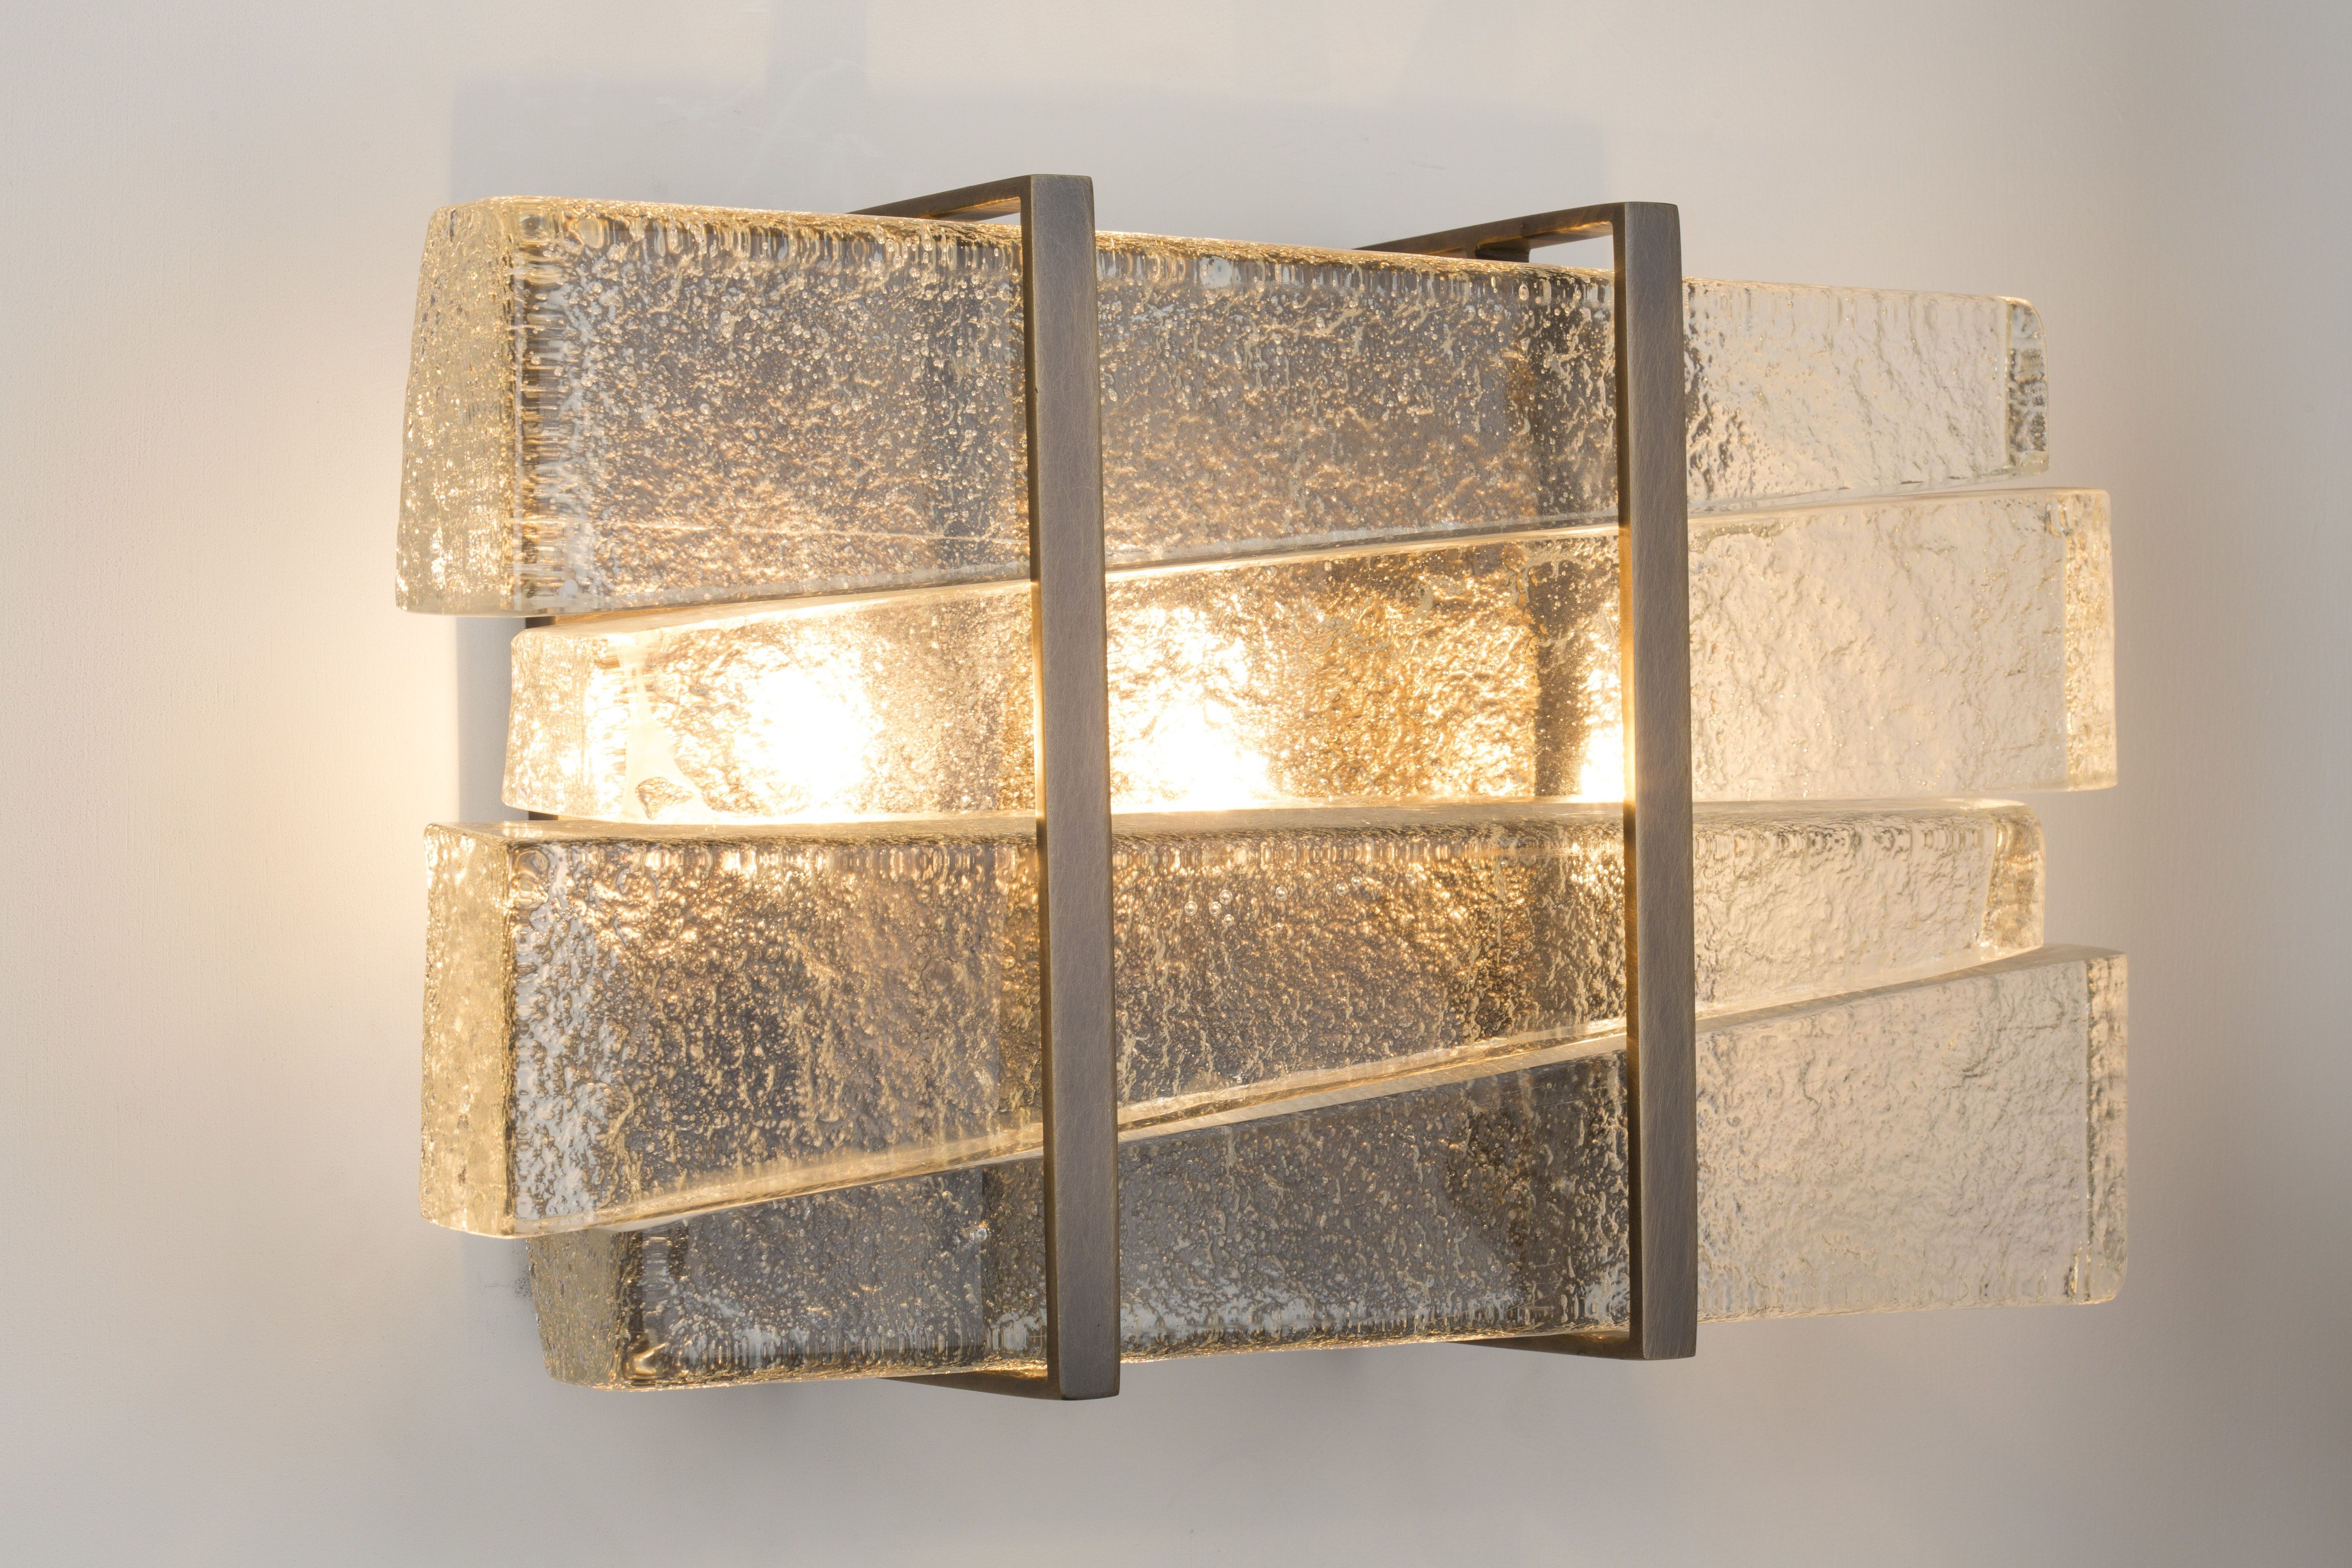 Mr Tom Wall Sconce By Thomas Cooper Studio Sconces Sconce Lamp Modern Sconces